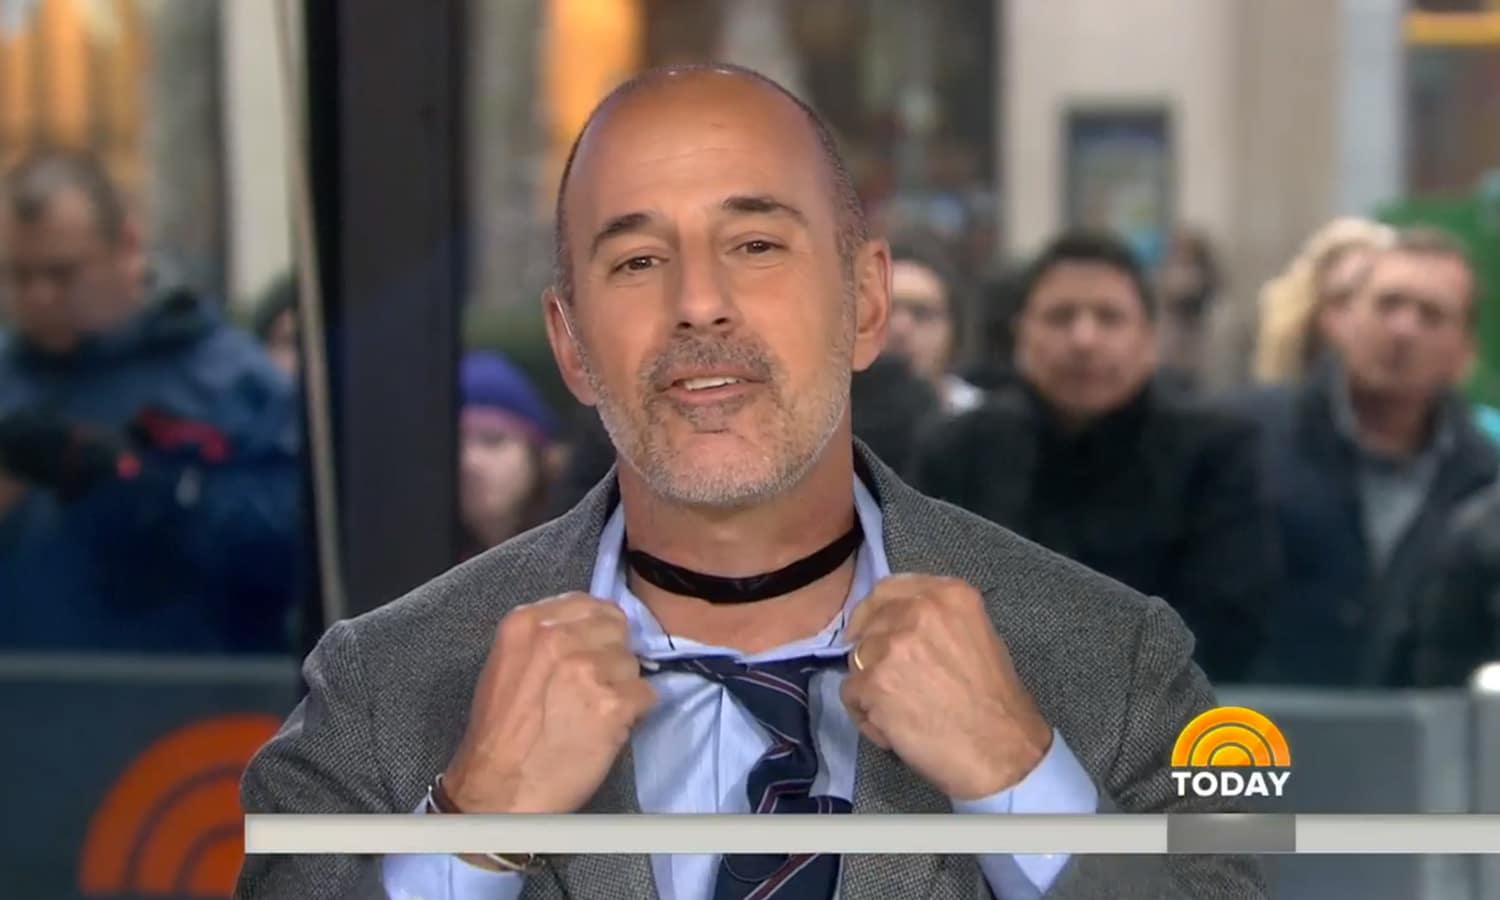 Matt Lauer And The Choker: What Other Throwback Fashion Trends Should He Try?